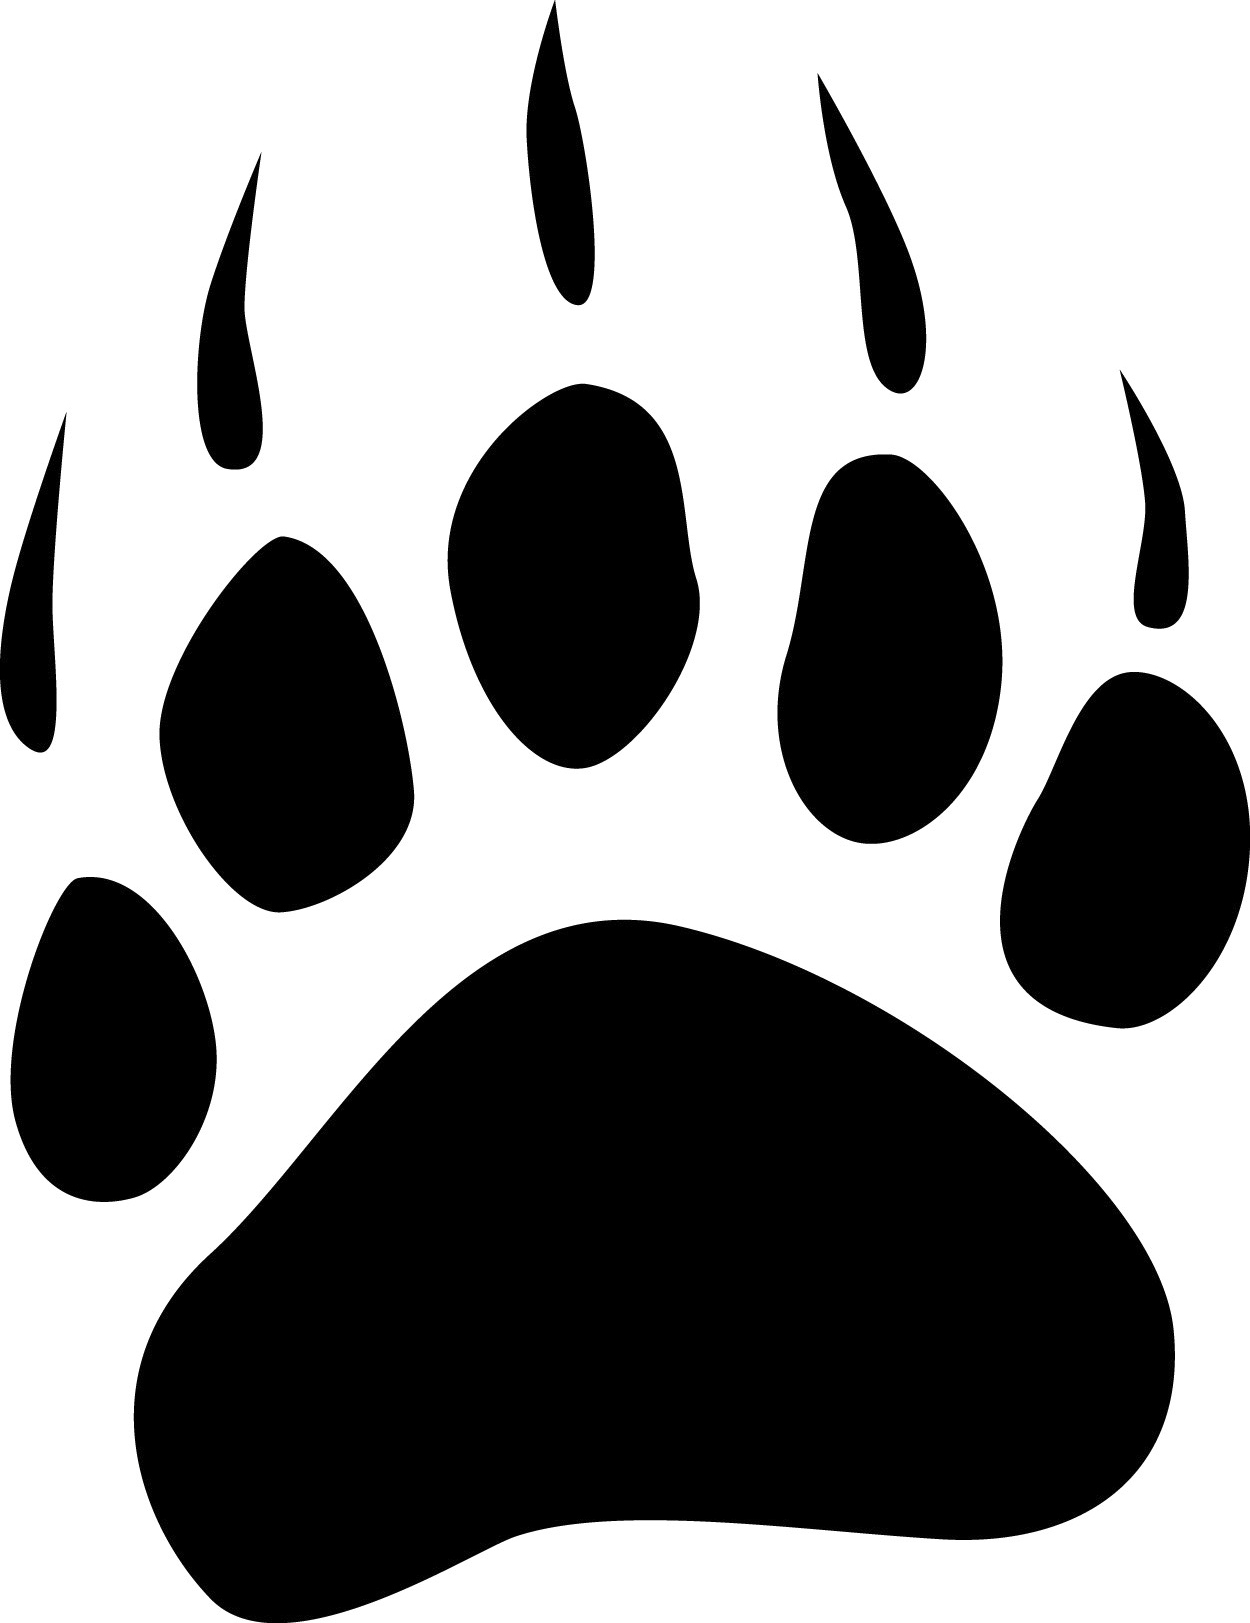 Logo Black And White Paw Print Circle   Quoteko